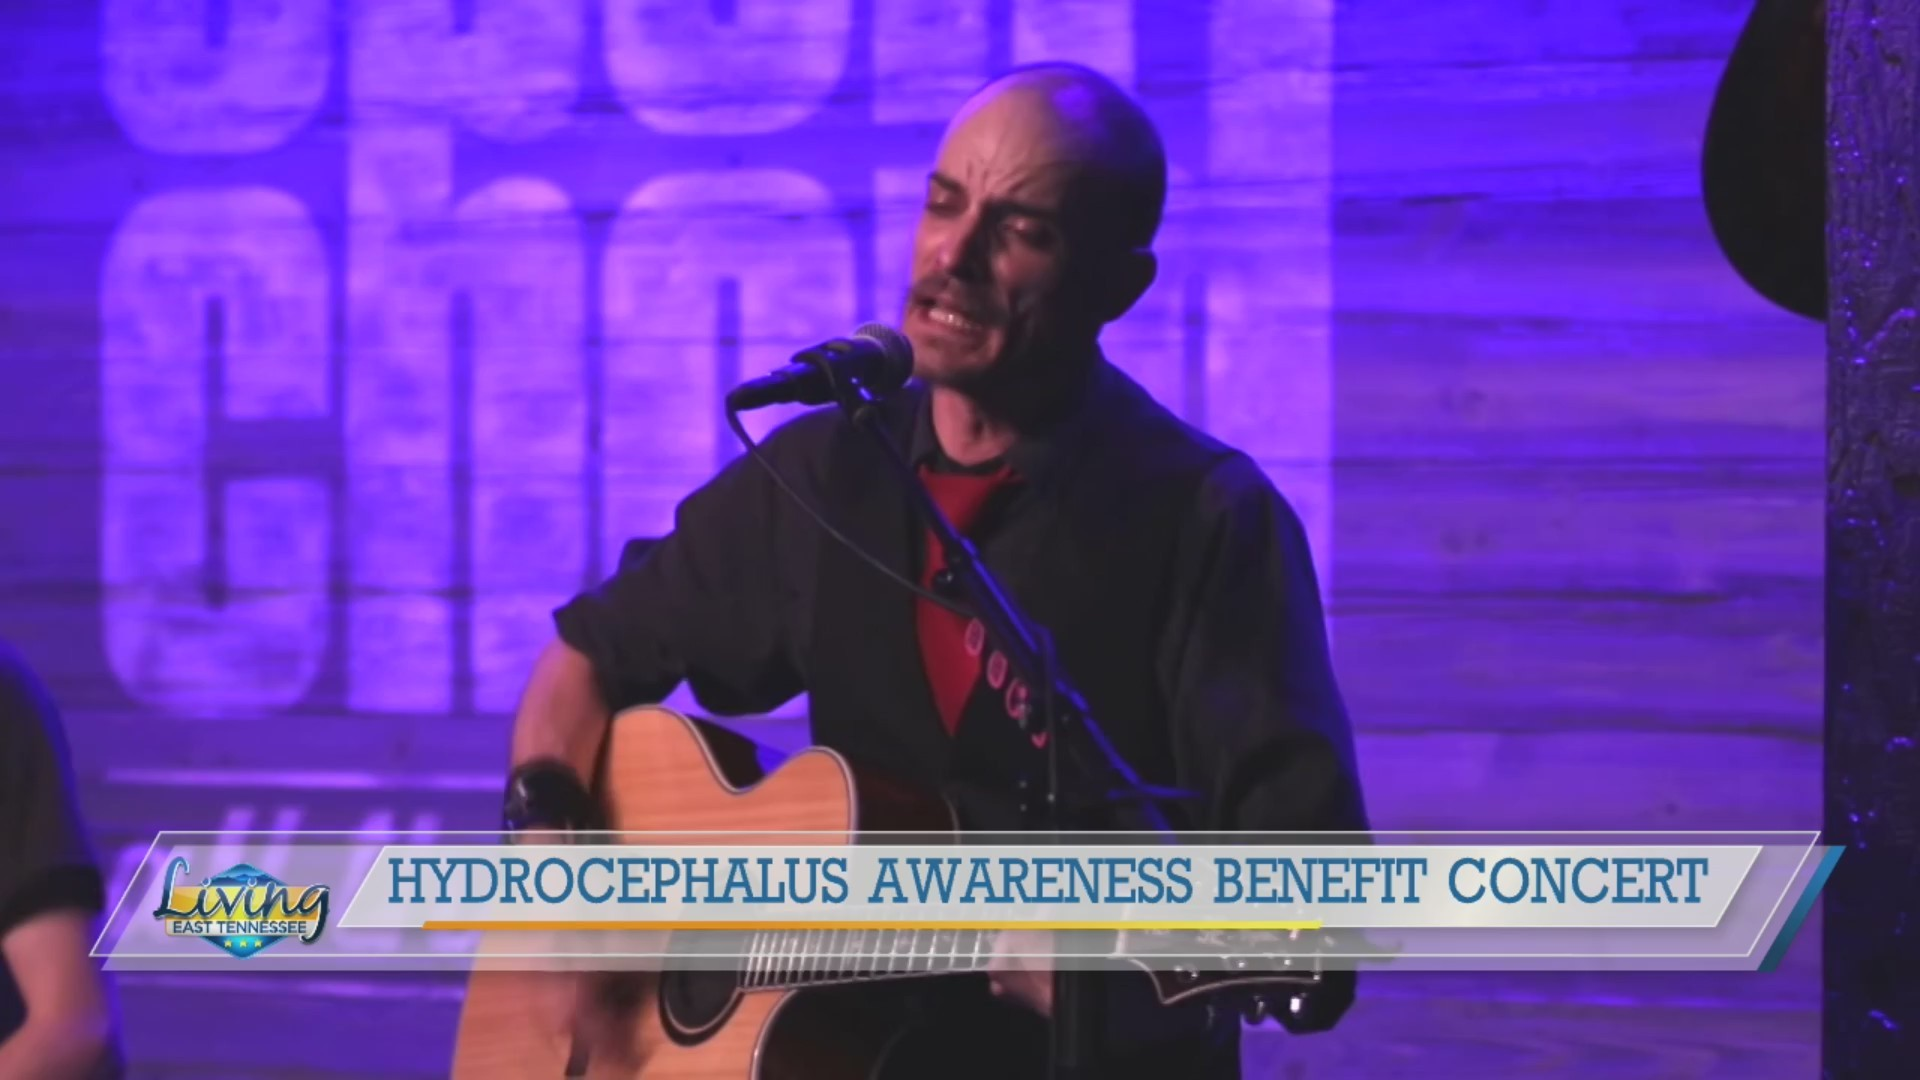 Hydrocephalus awareness rock concert benefit